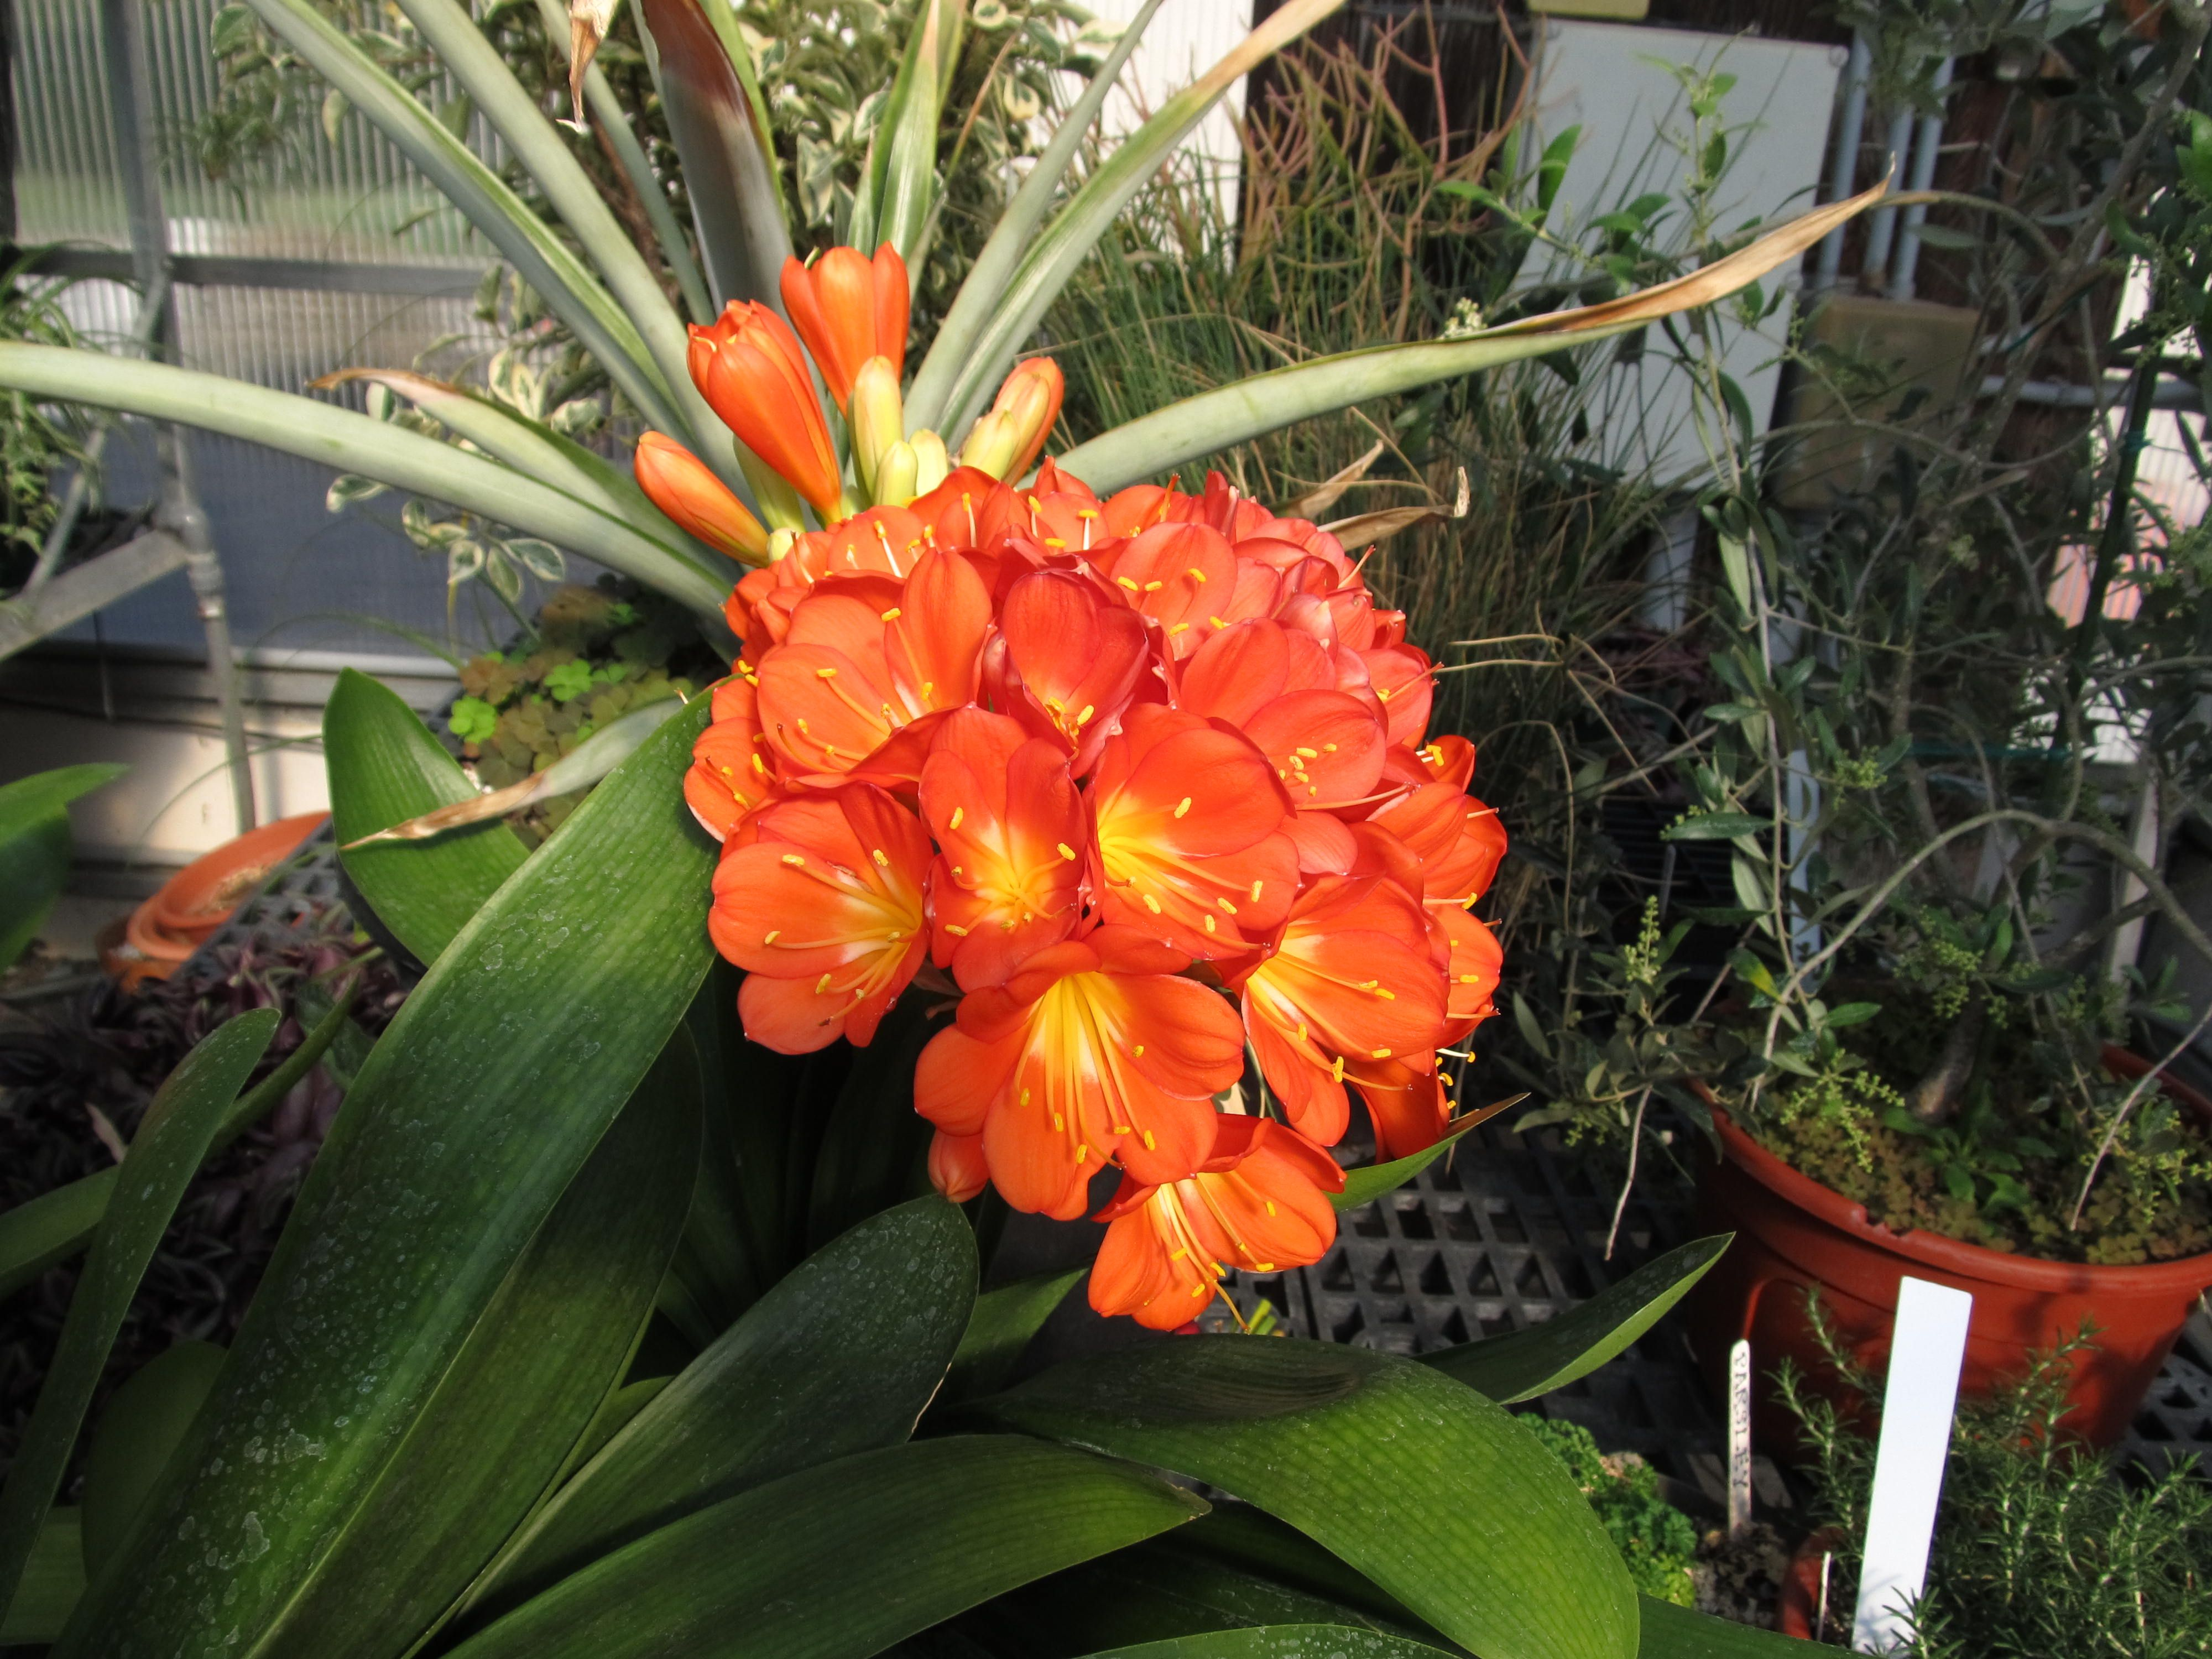 Tropical Plants Clivia S Large Orange Flowers In Your